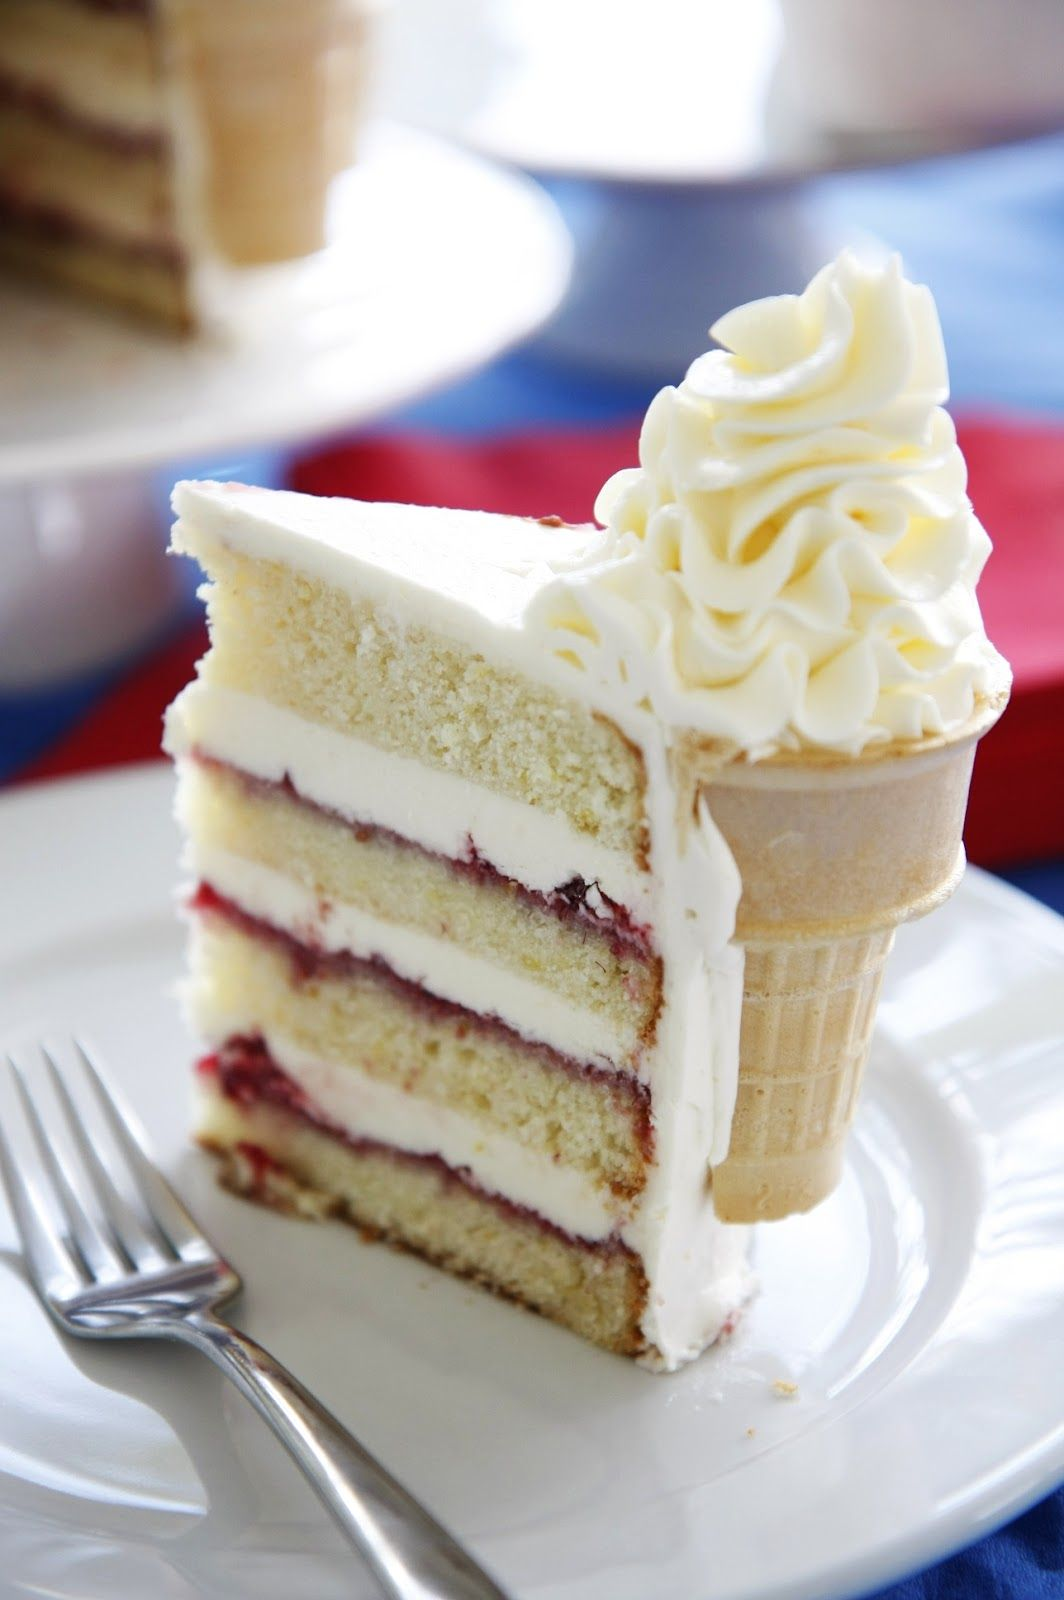 Ice Cream Birthday Cake Original Recipe In Lithuanian Uses A Frosting Pudding Type For The